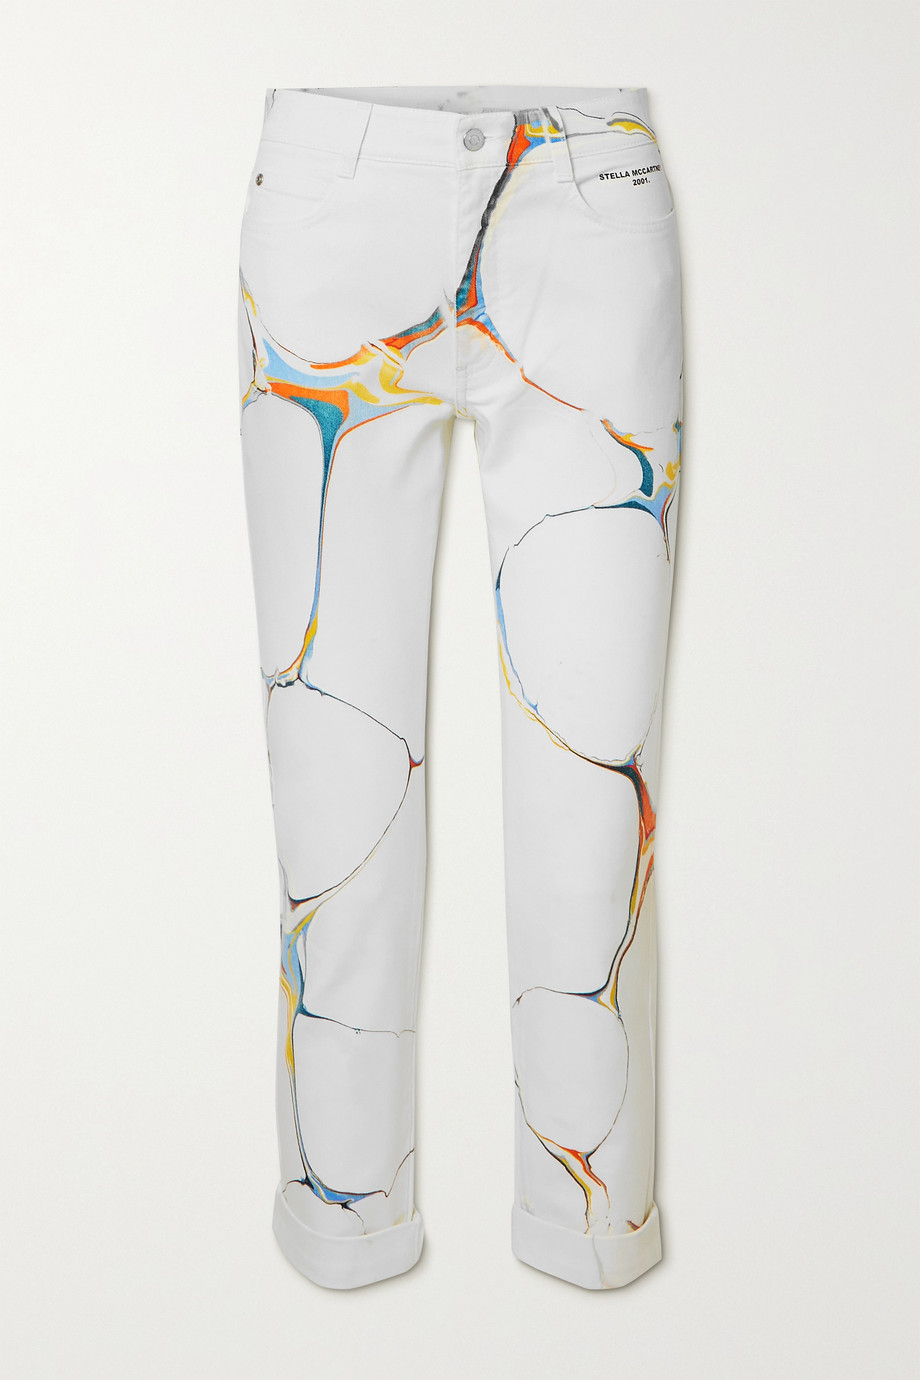 STELLA MCCARTNEY + NET SUSTAIN printed high-rise skinny jeans